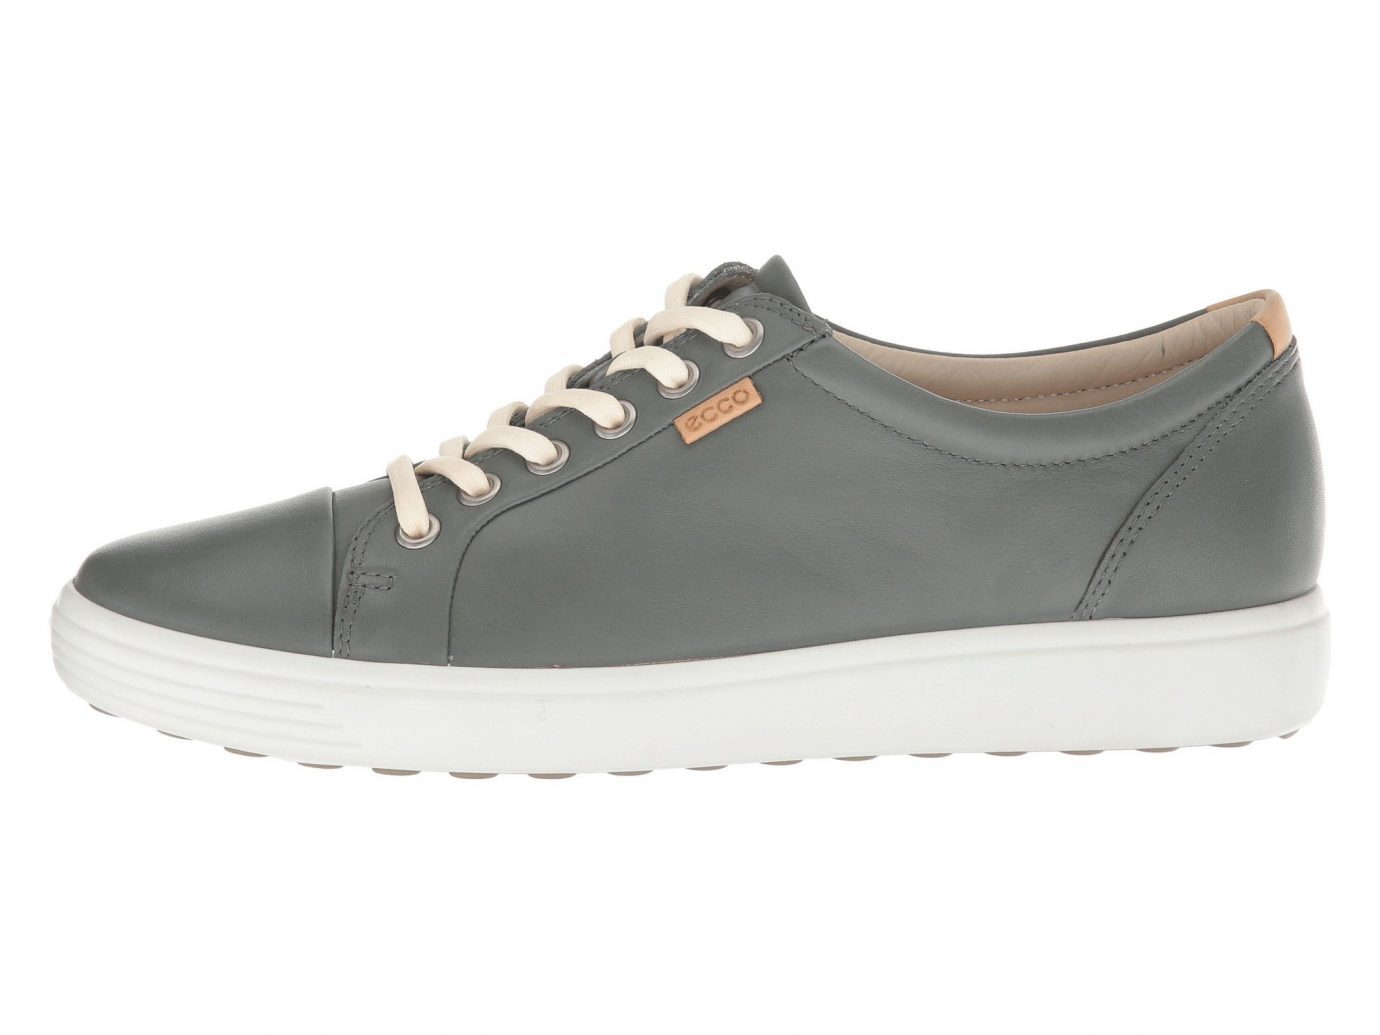 022a839934 The Most Stylish Walking Shoes for Women (2019)